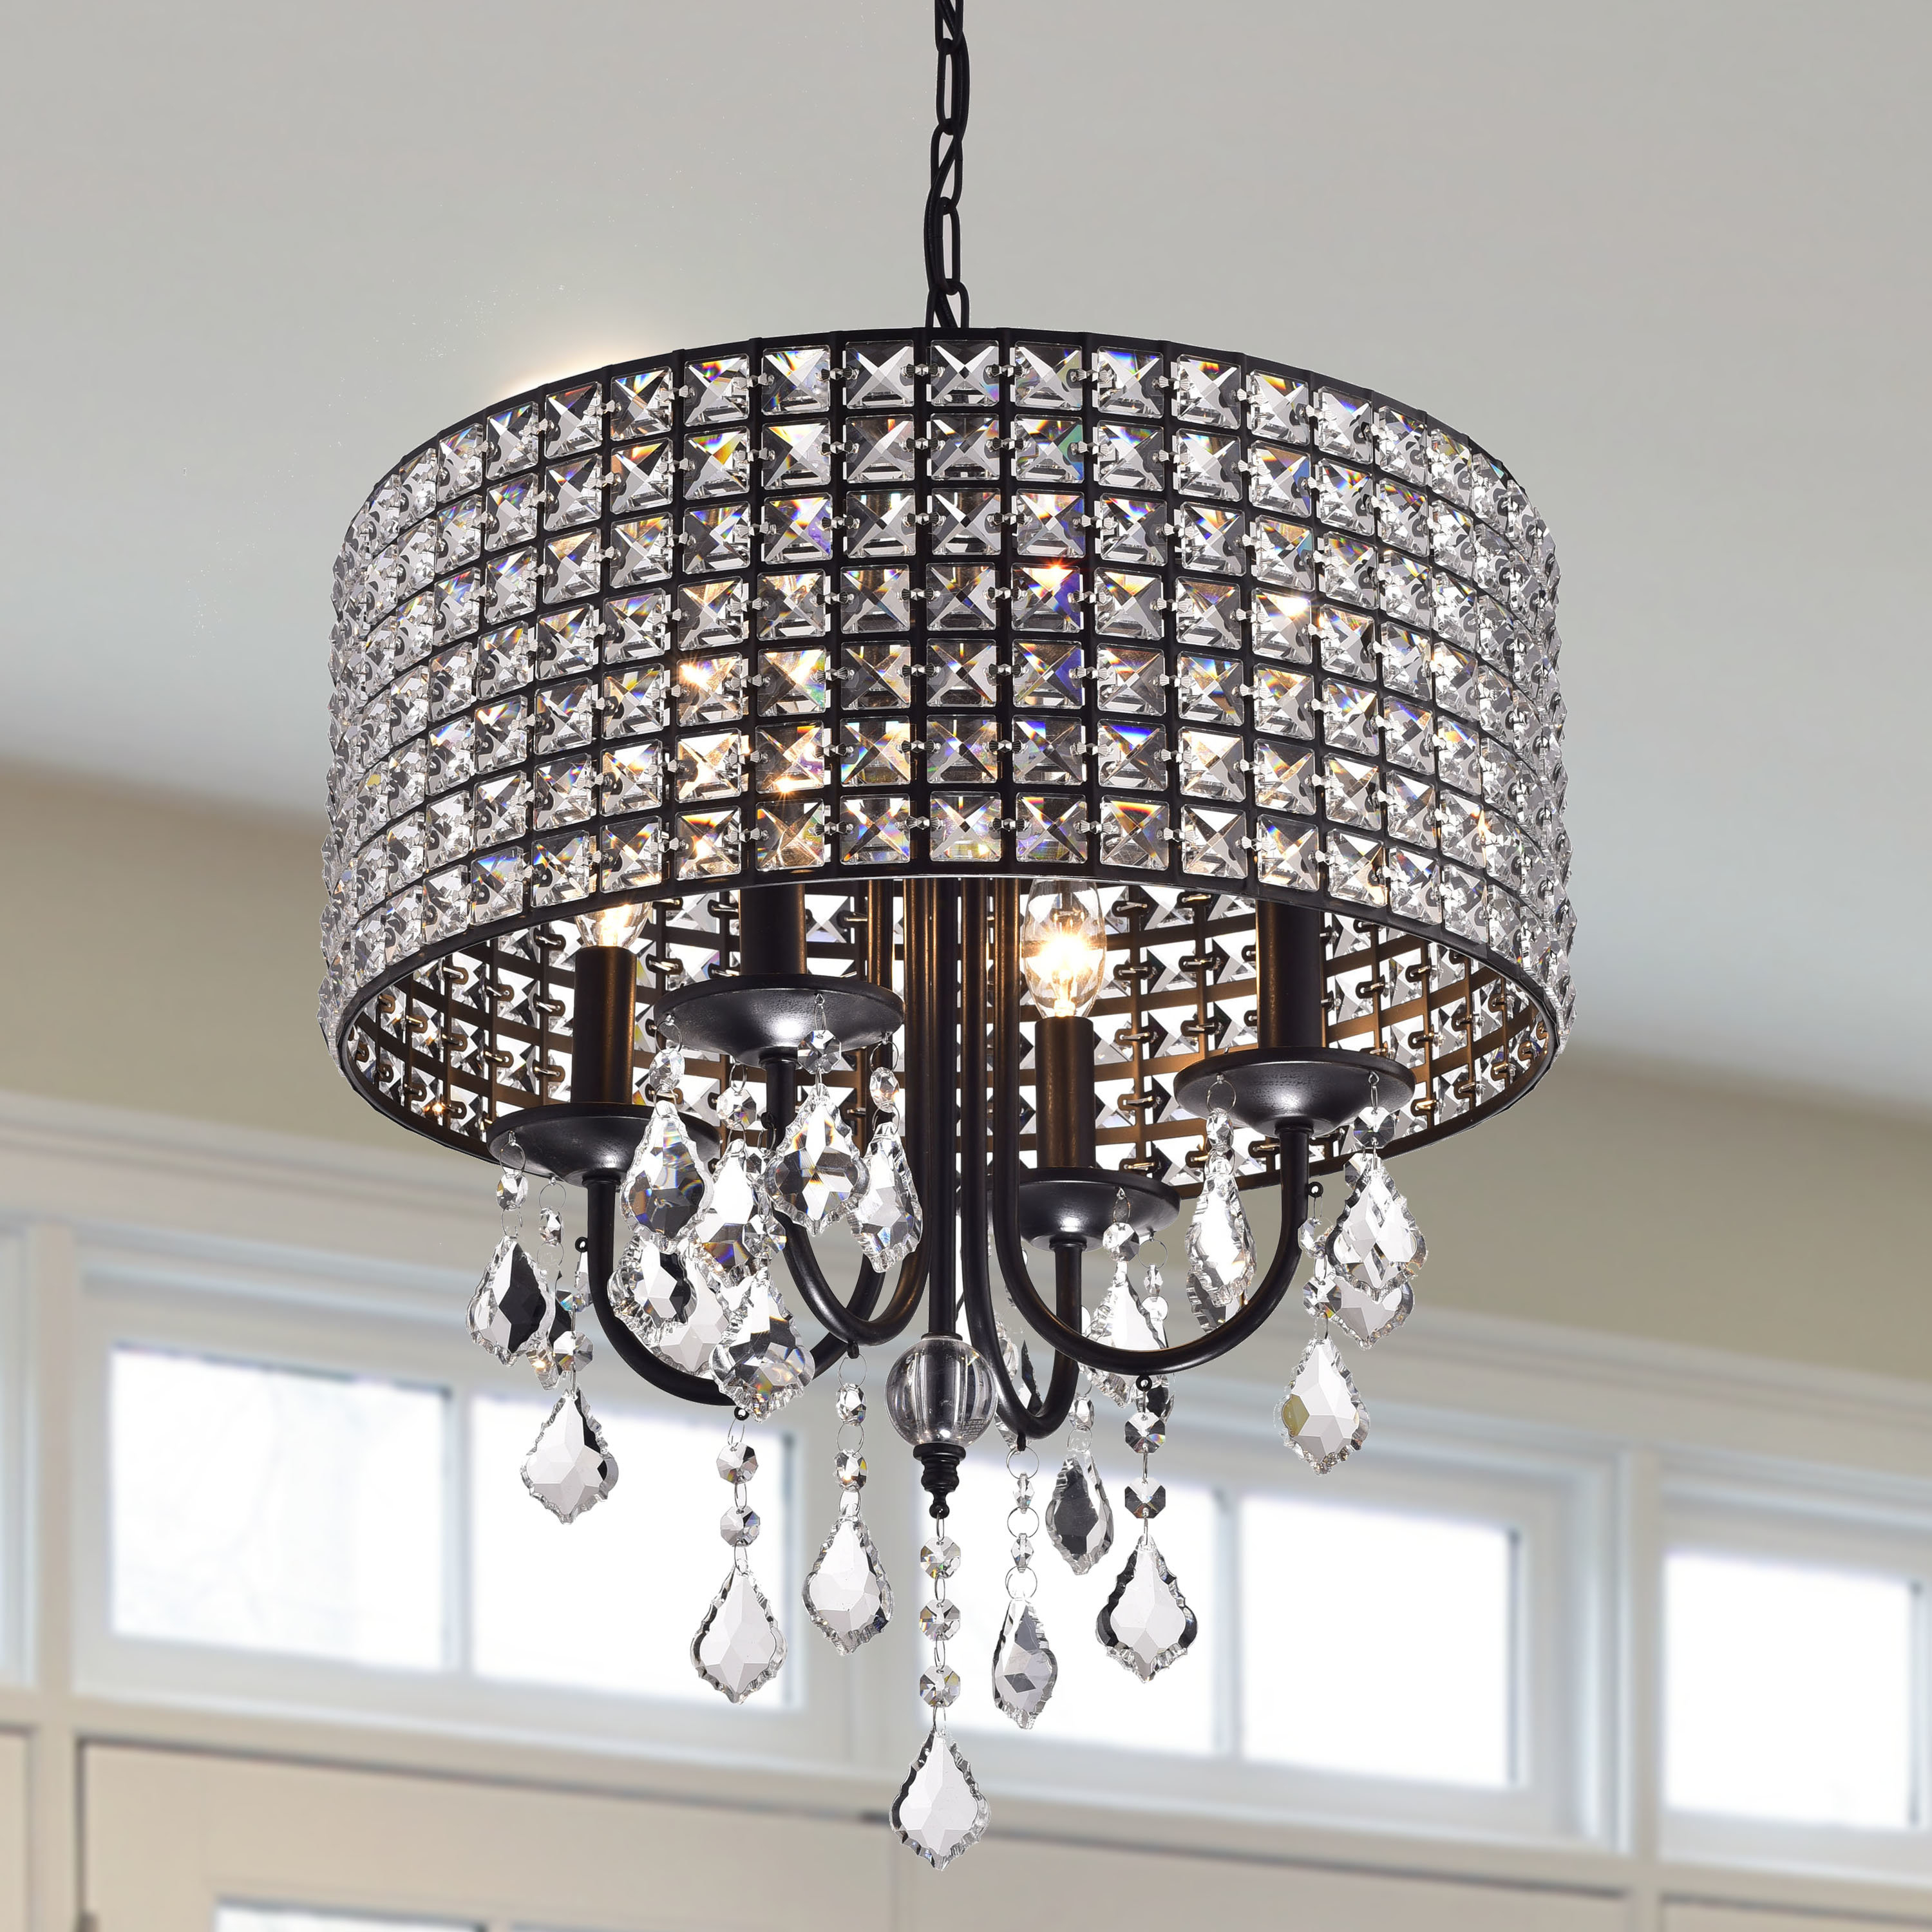 2020 Albano 4 Light Crystal Chandelier With Regard To Von 4 Light Crystal Chandeliers (View 1 of 20)